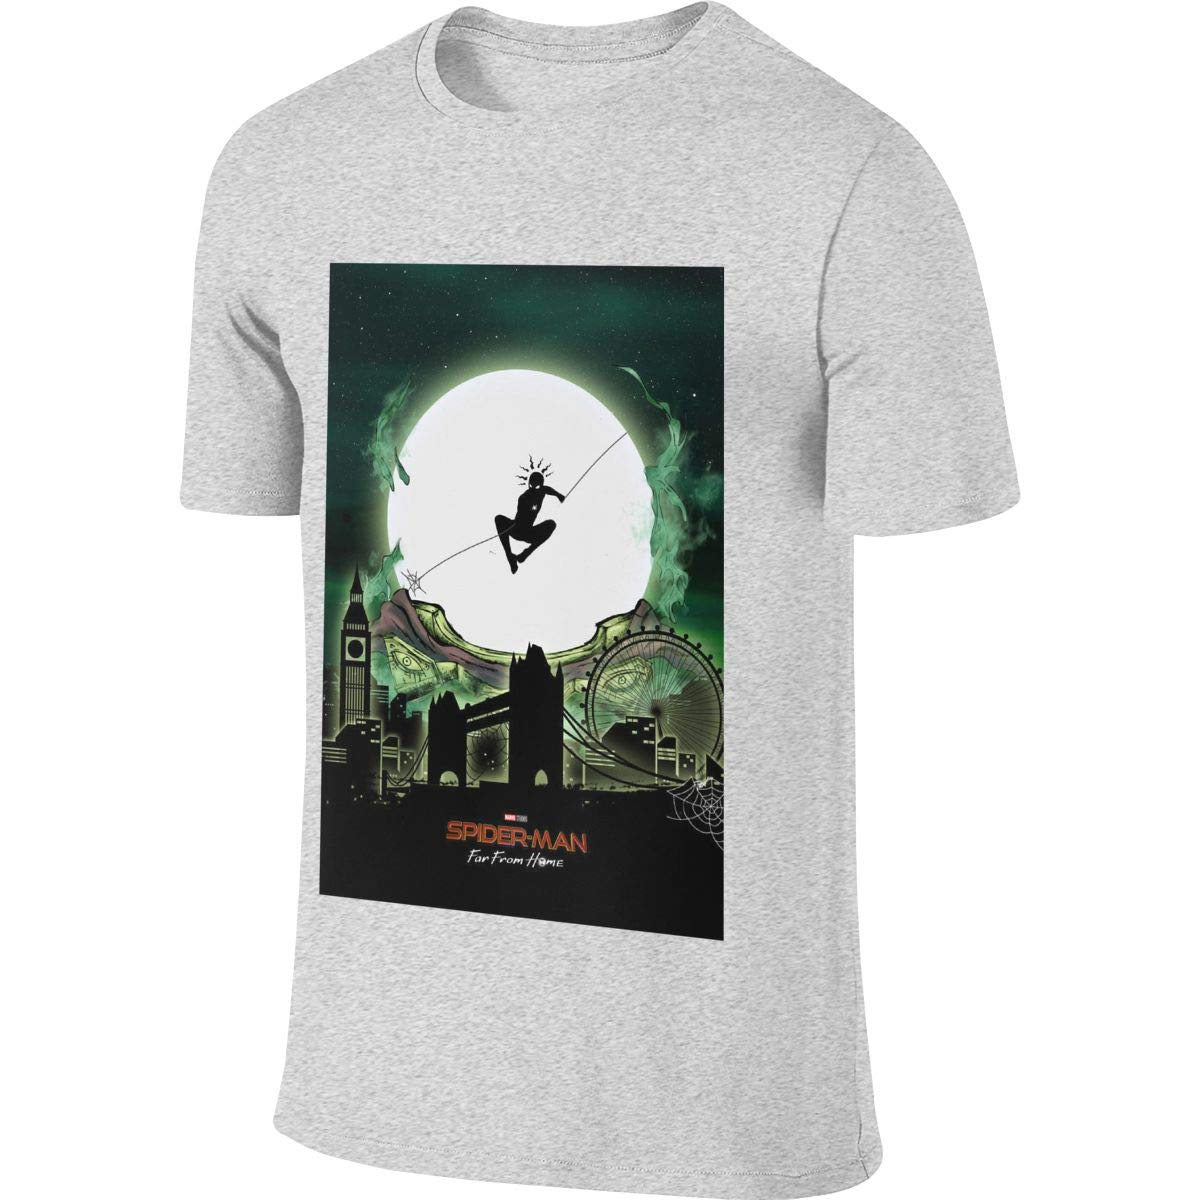 SHENGN Mens Personalized New Tees Spider Man Peter Parker Tshirts